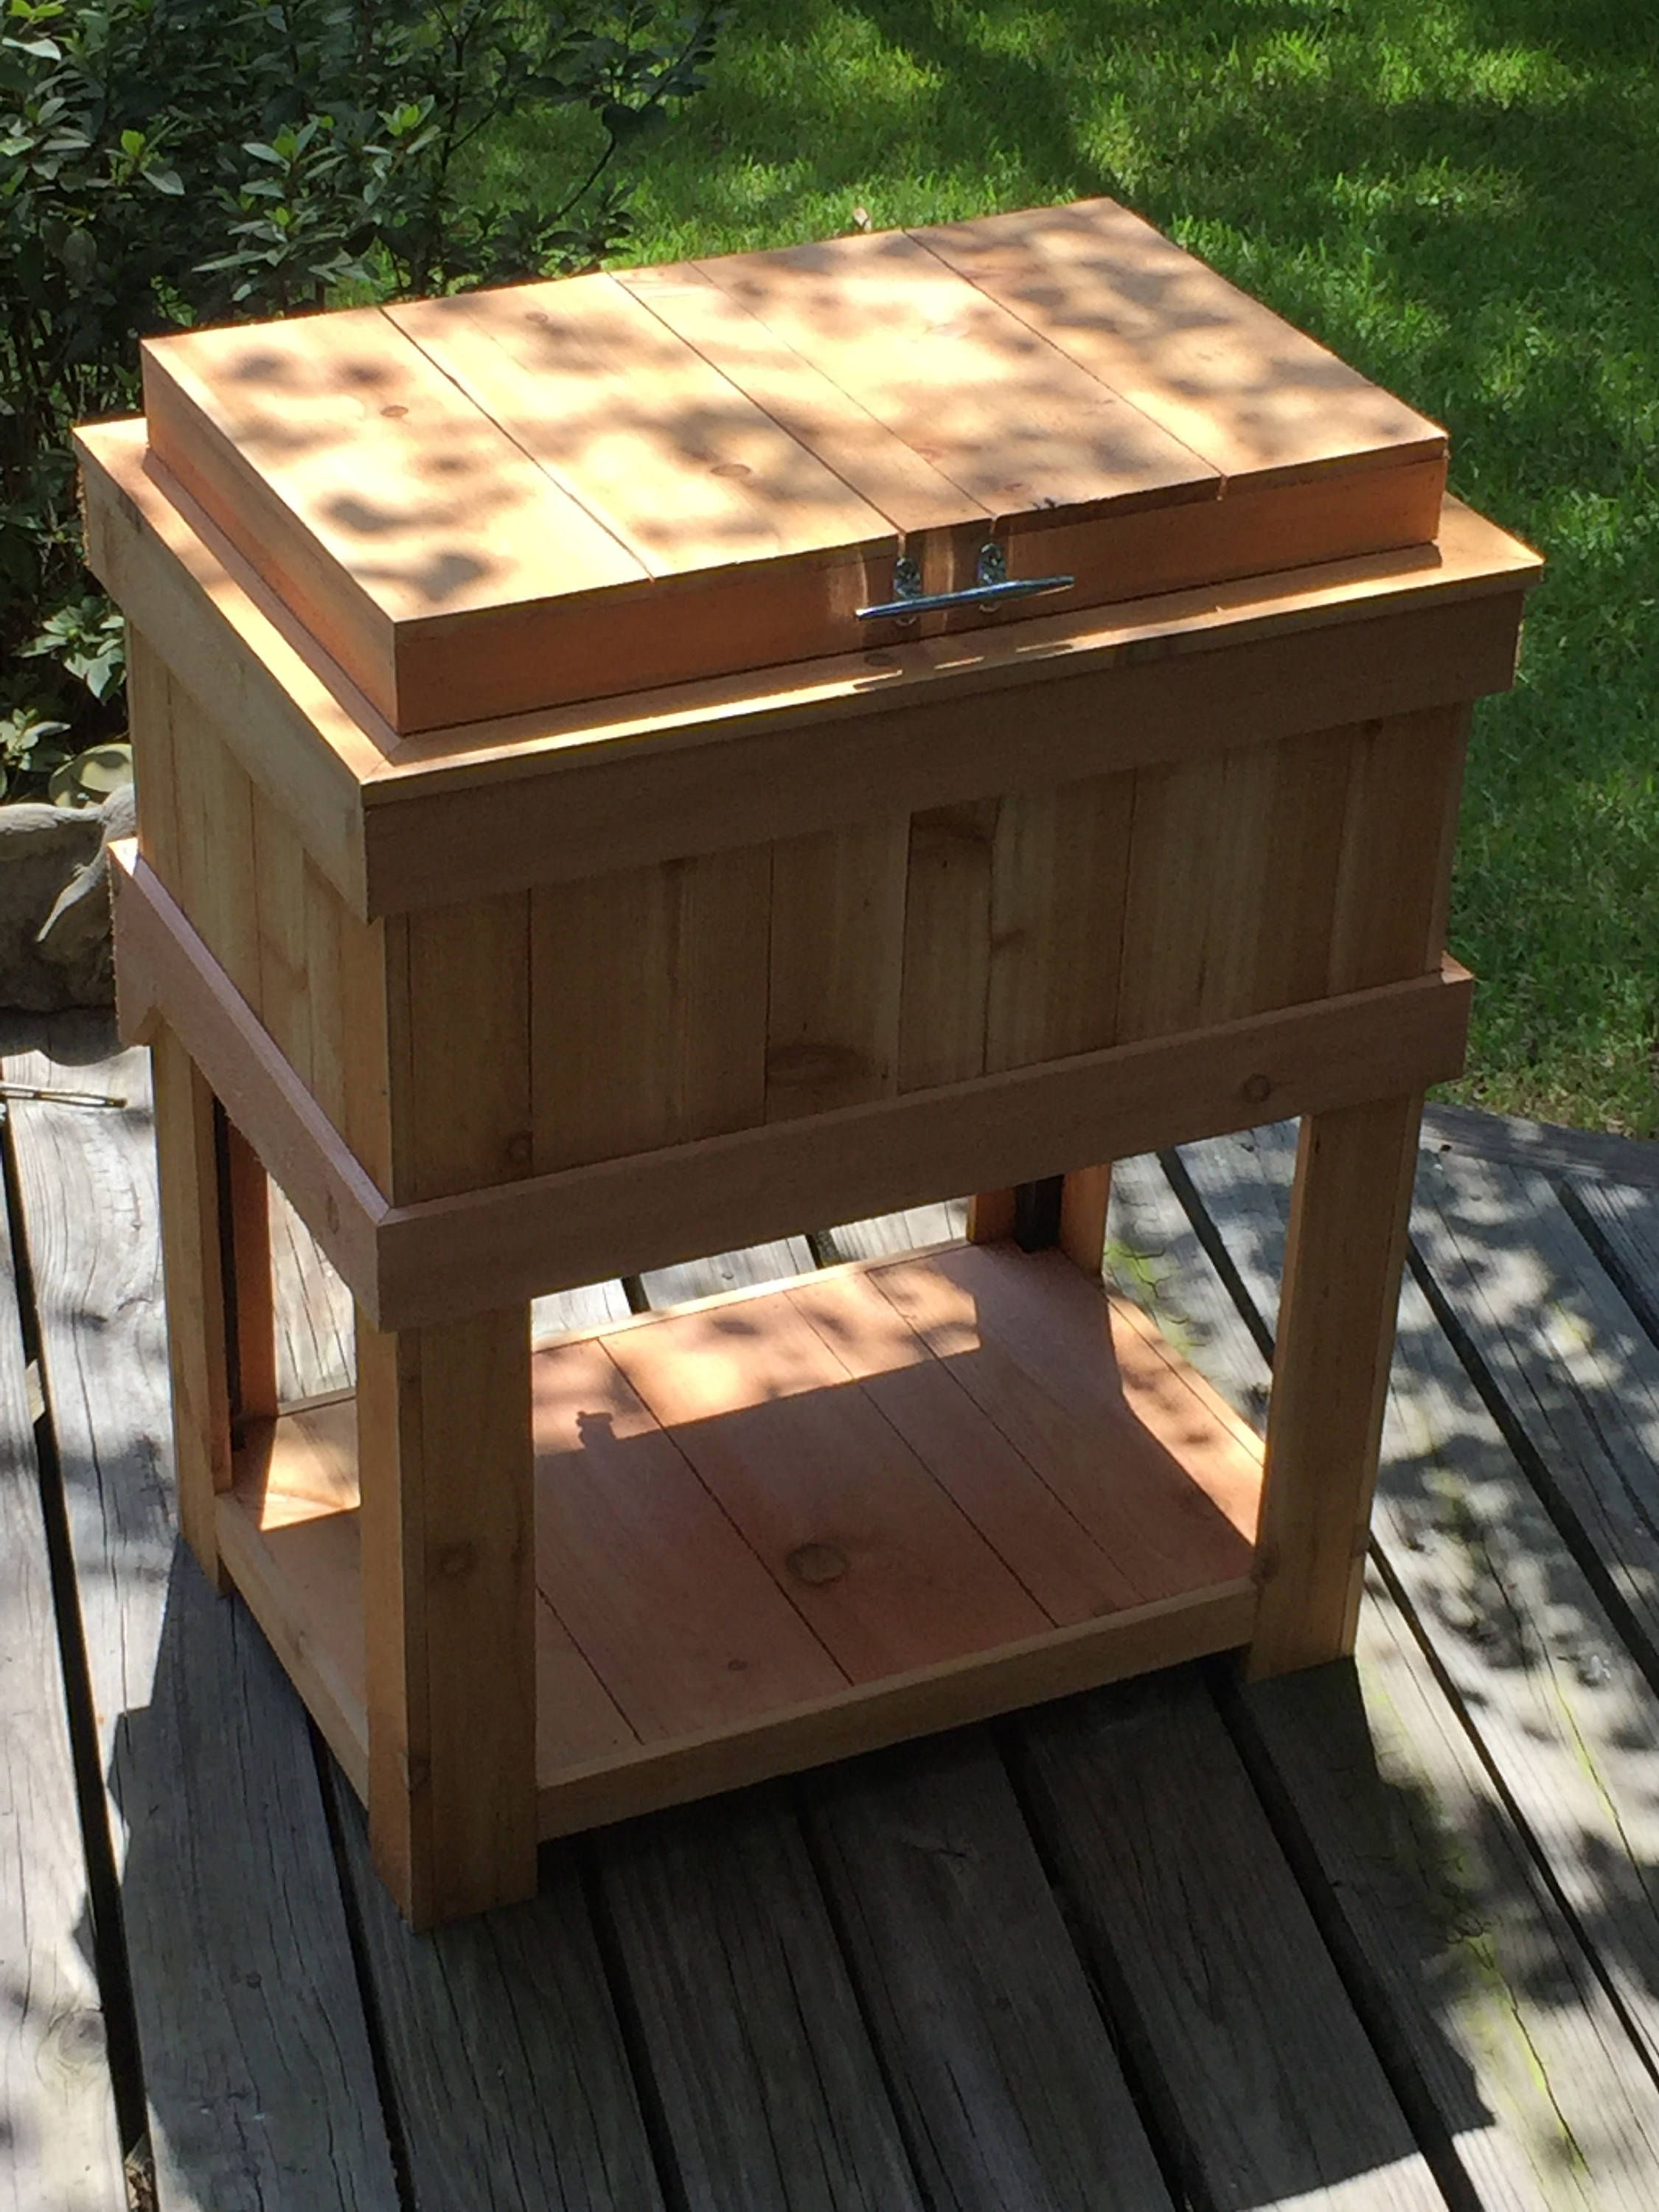 Red Cedar Patio Cooler Etsy Patio Cooler Patio Steps Gravel Patio Diy